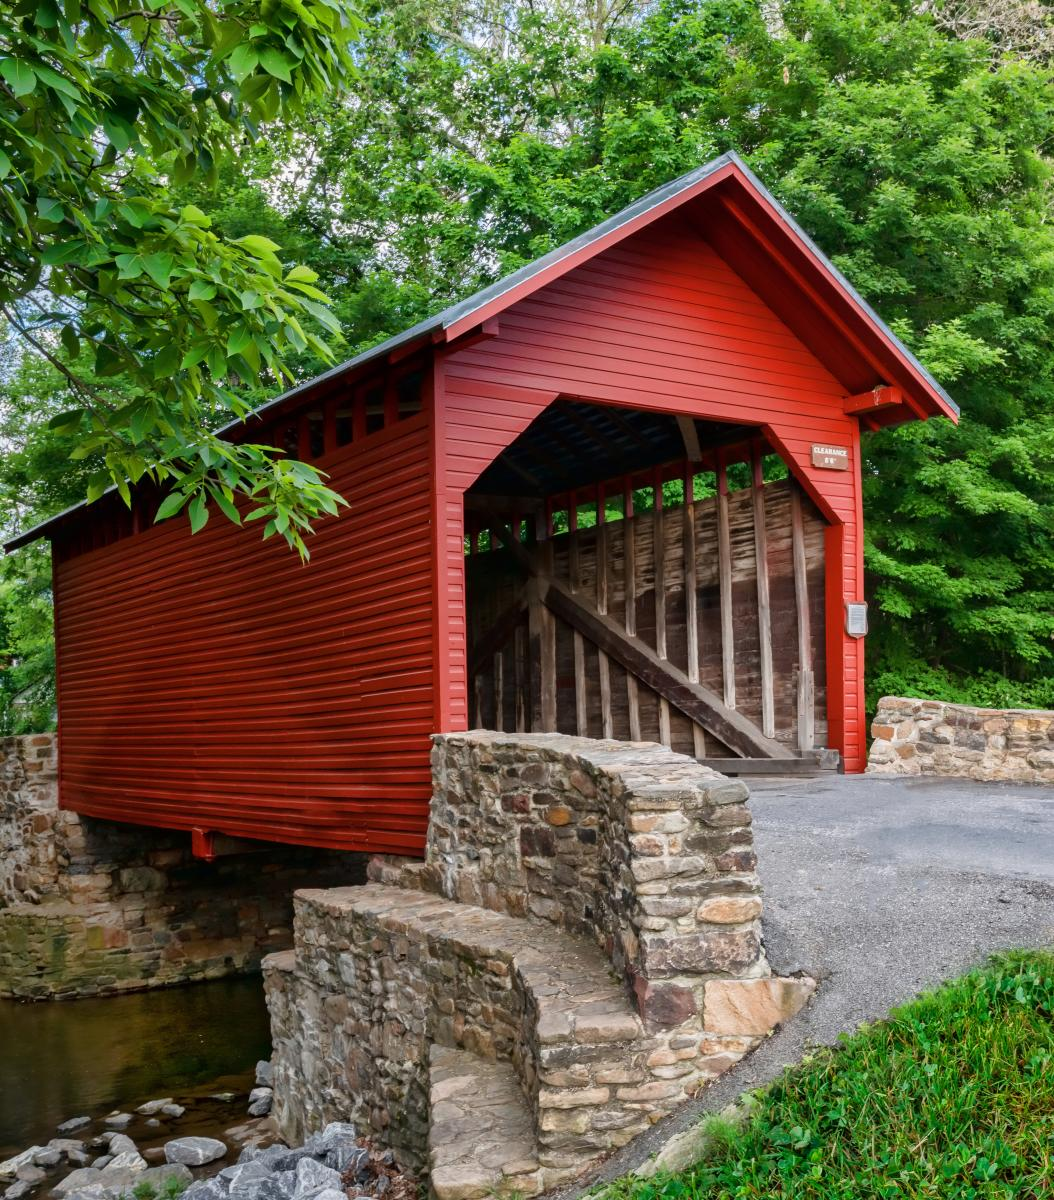 2006, Roddy Road Covered Bridge, Thurmont, MD